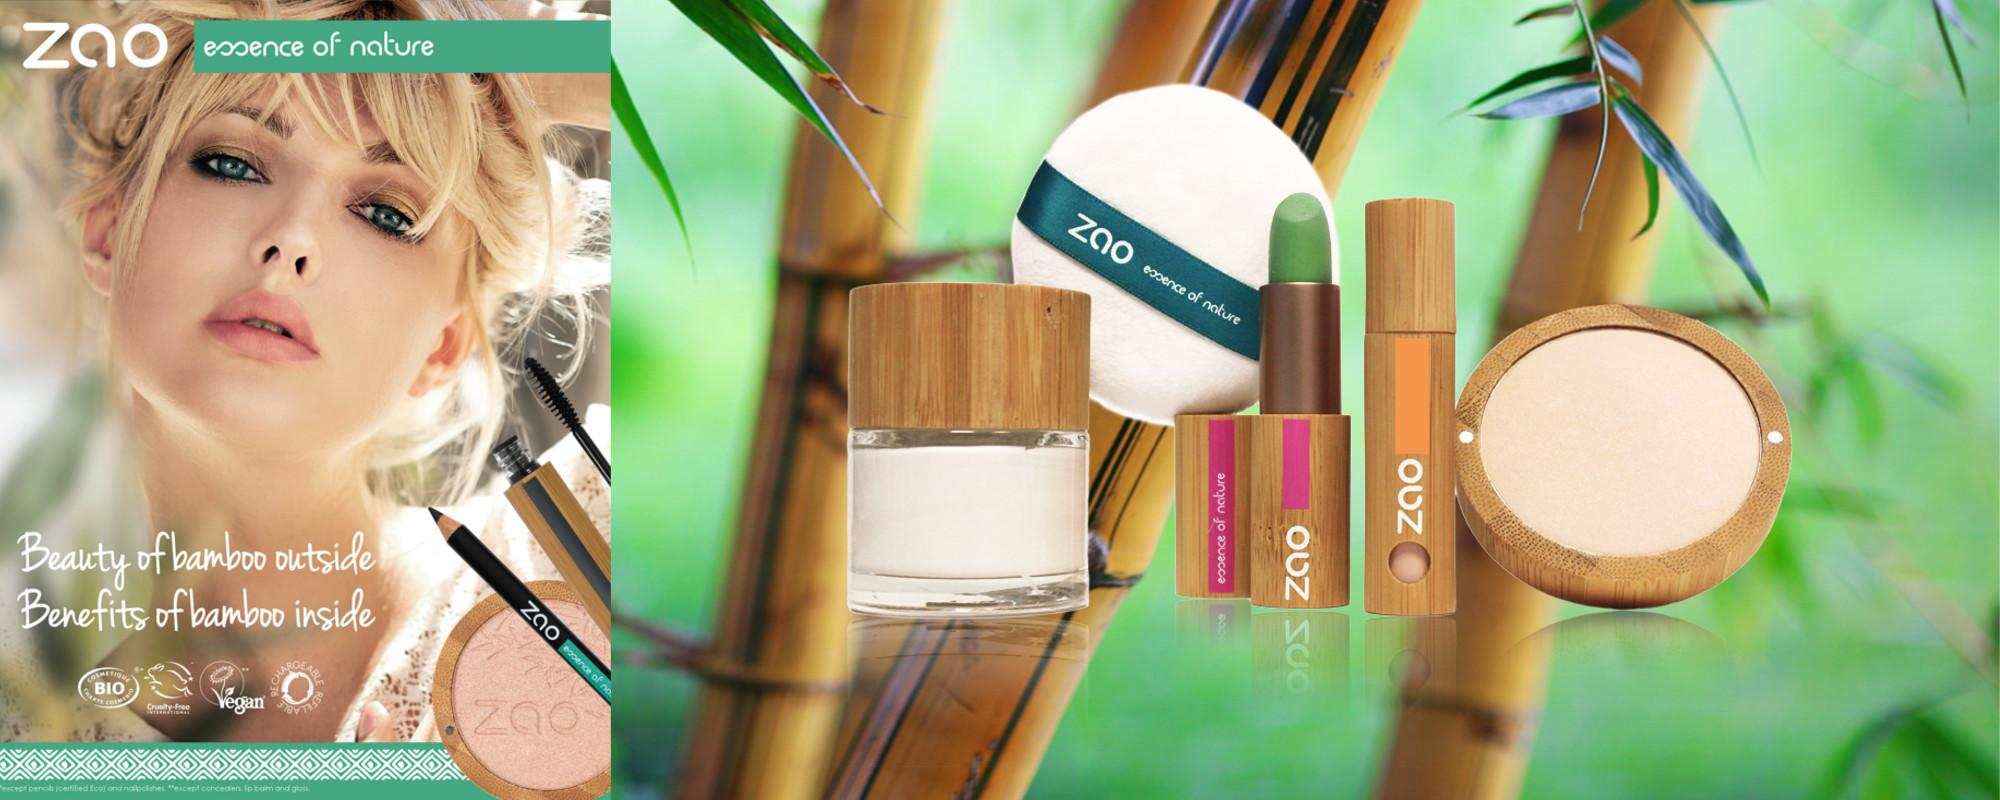 Discover Zao Premium Refillable Make Up